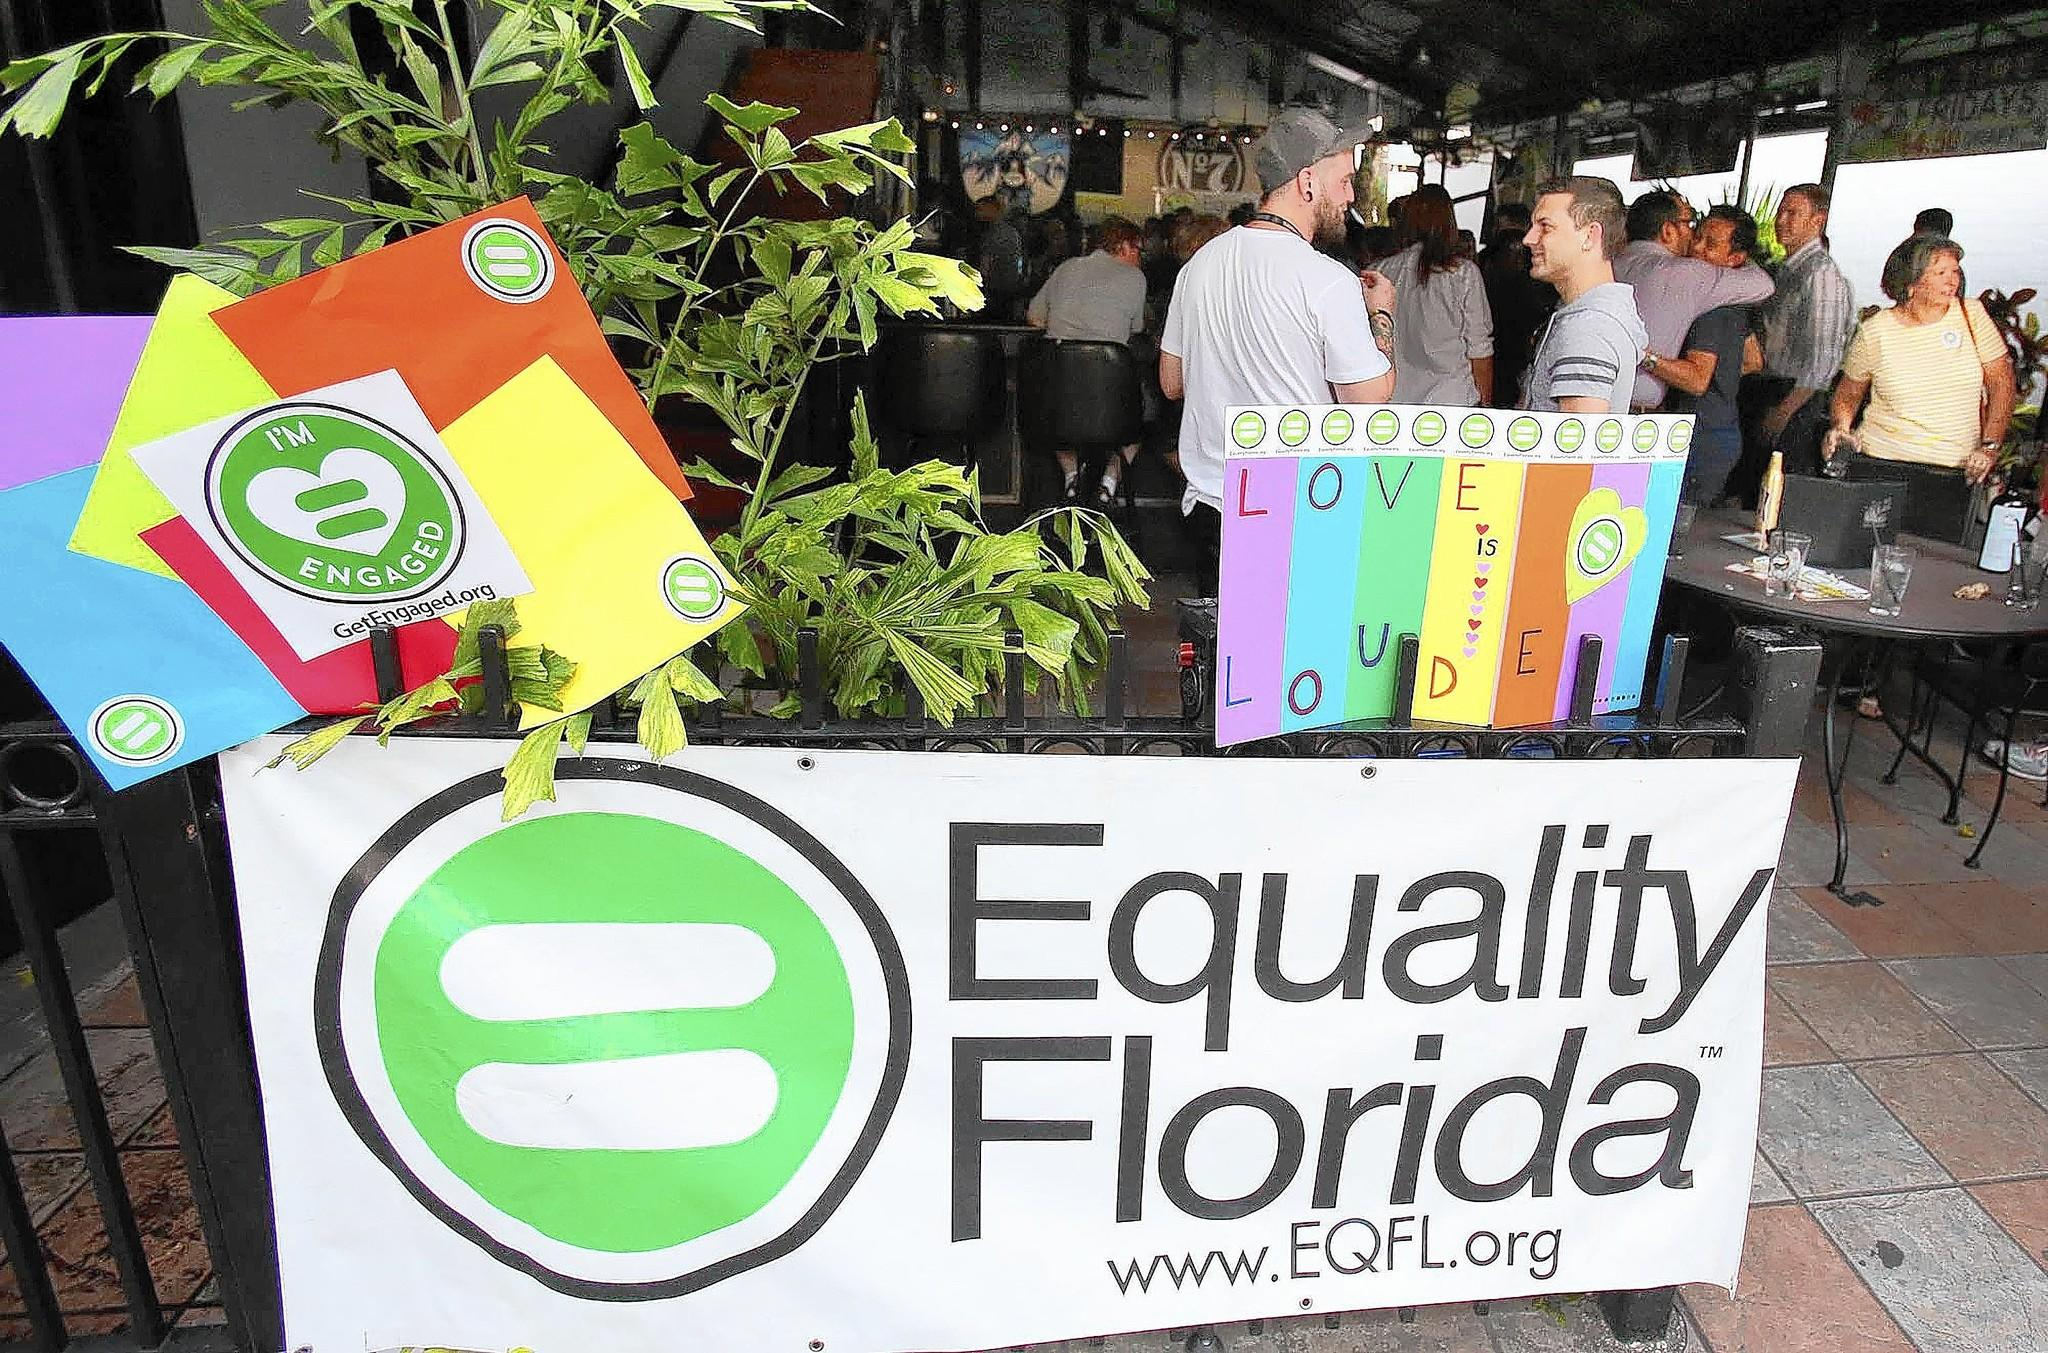 A crowd cheers during a celebration party in Orlando, Fla., on Thursday, July 17, 2014. The party, hosted by Equality Florida, was in celebration of a judge's ruling in Florida that struck down a ban on gay marriage.